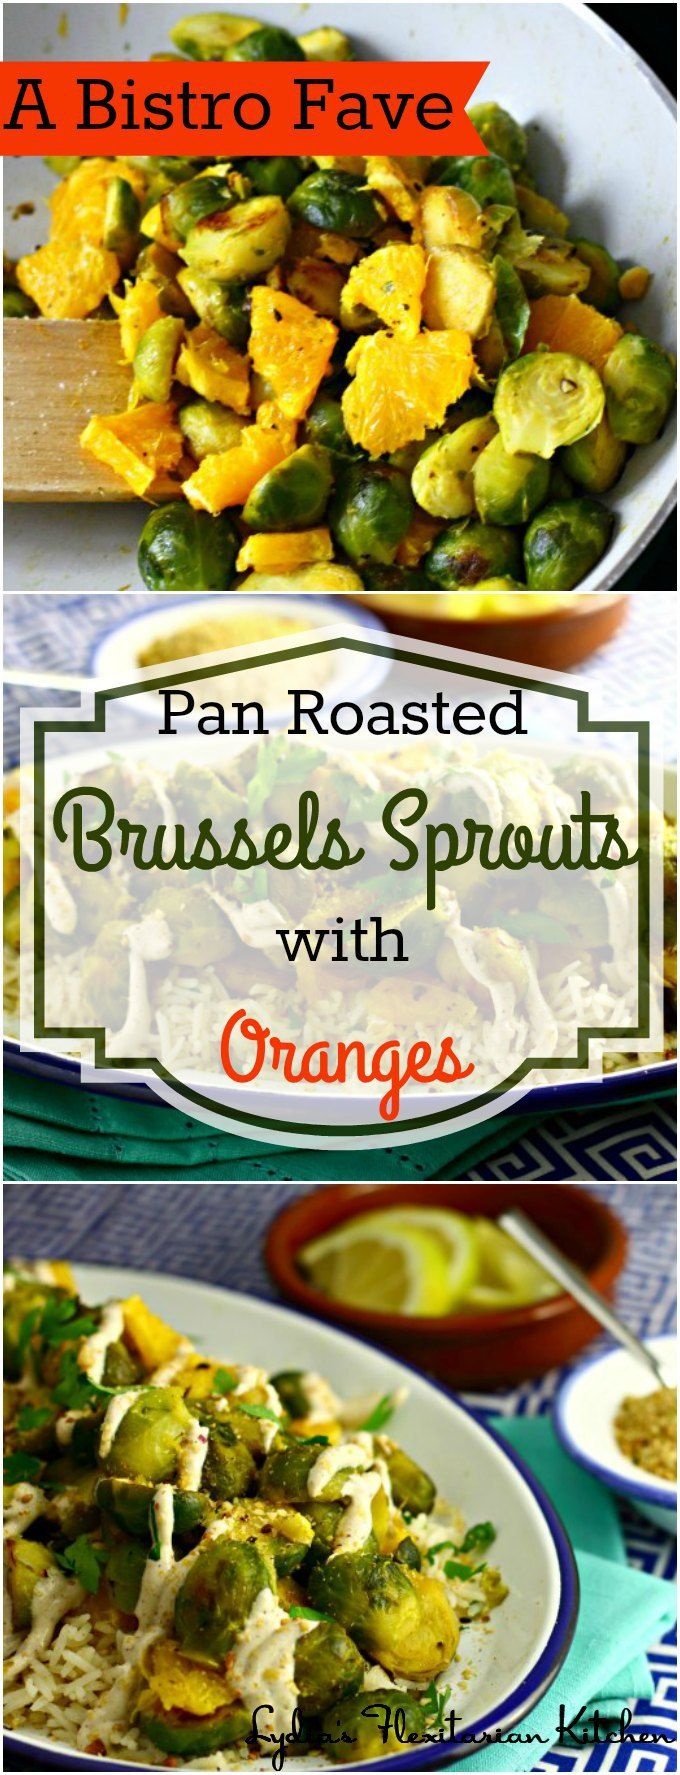 Pan Roasted Brussels Sprouts with Oranges ~ An Oil Free & Vegan Version Inspired by Curtis Stone and Several Local Bistros ~ I Heart Cooking Clubs ~ Lydia's Flexitarian Kitchen